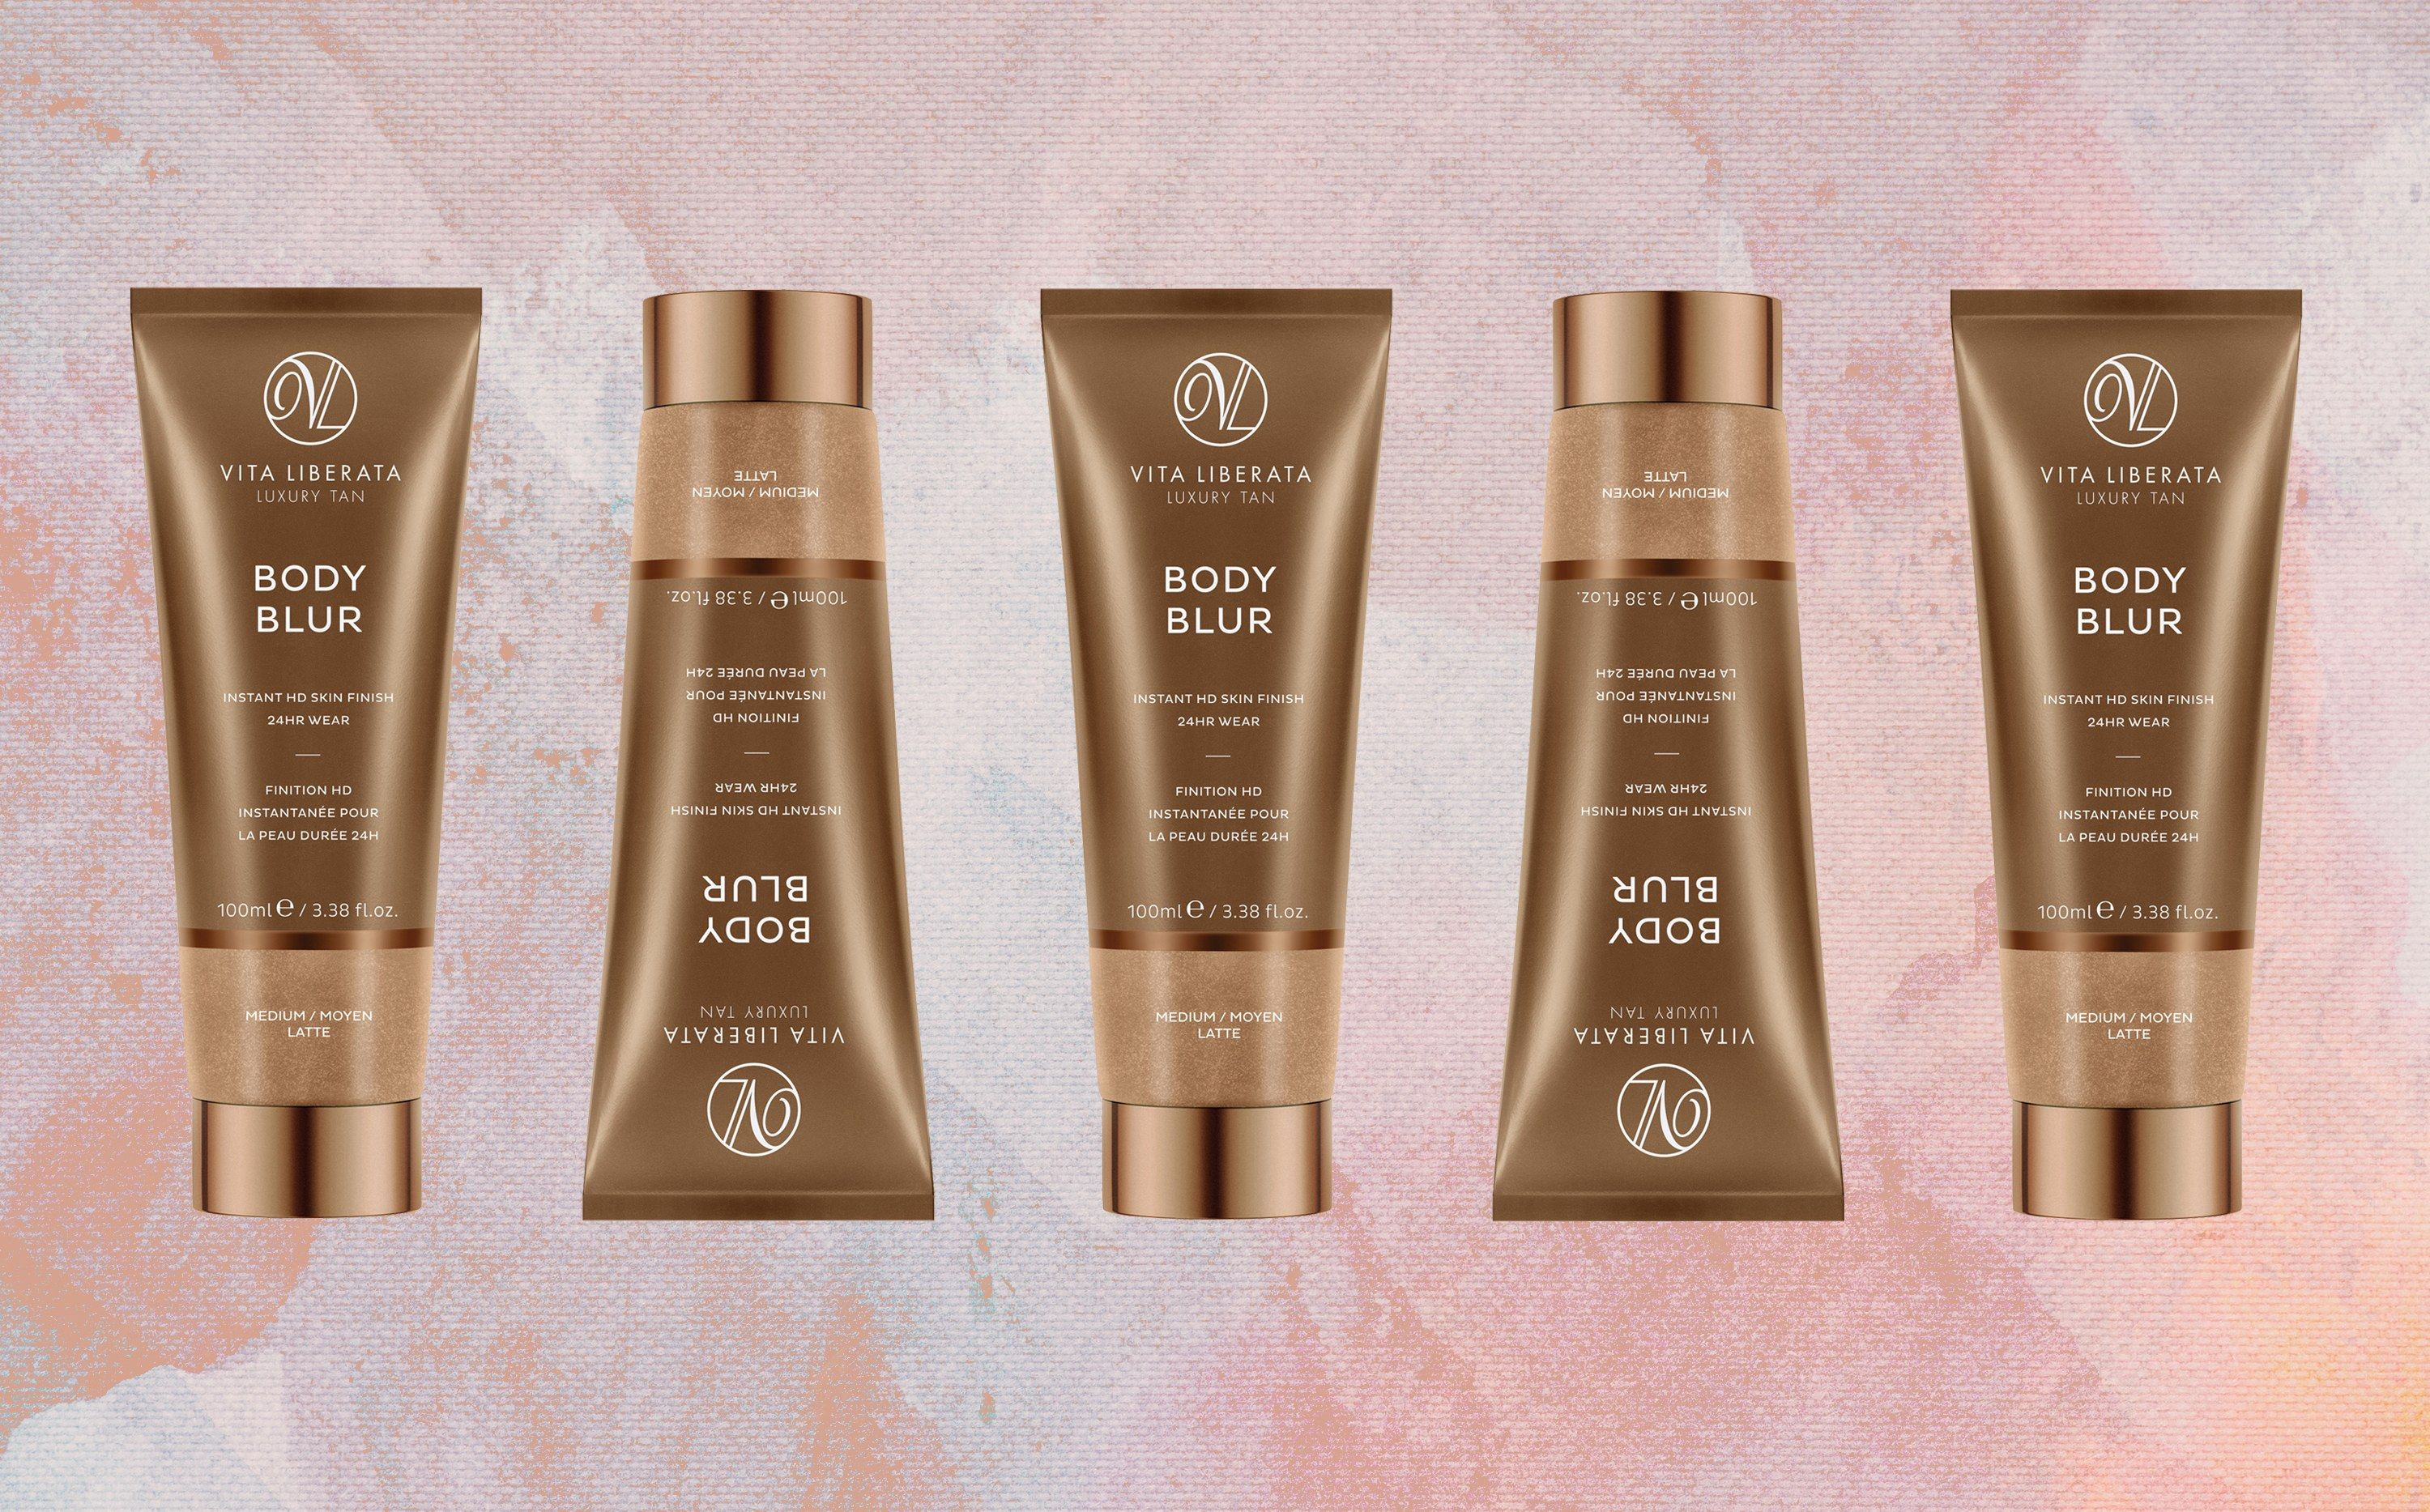 Vita Liberata Body Blur Instant HD Skin Finish Review